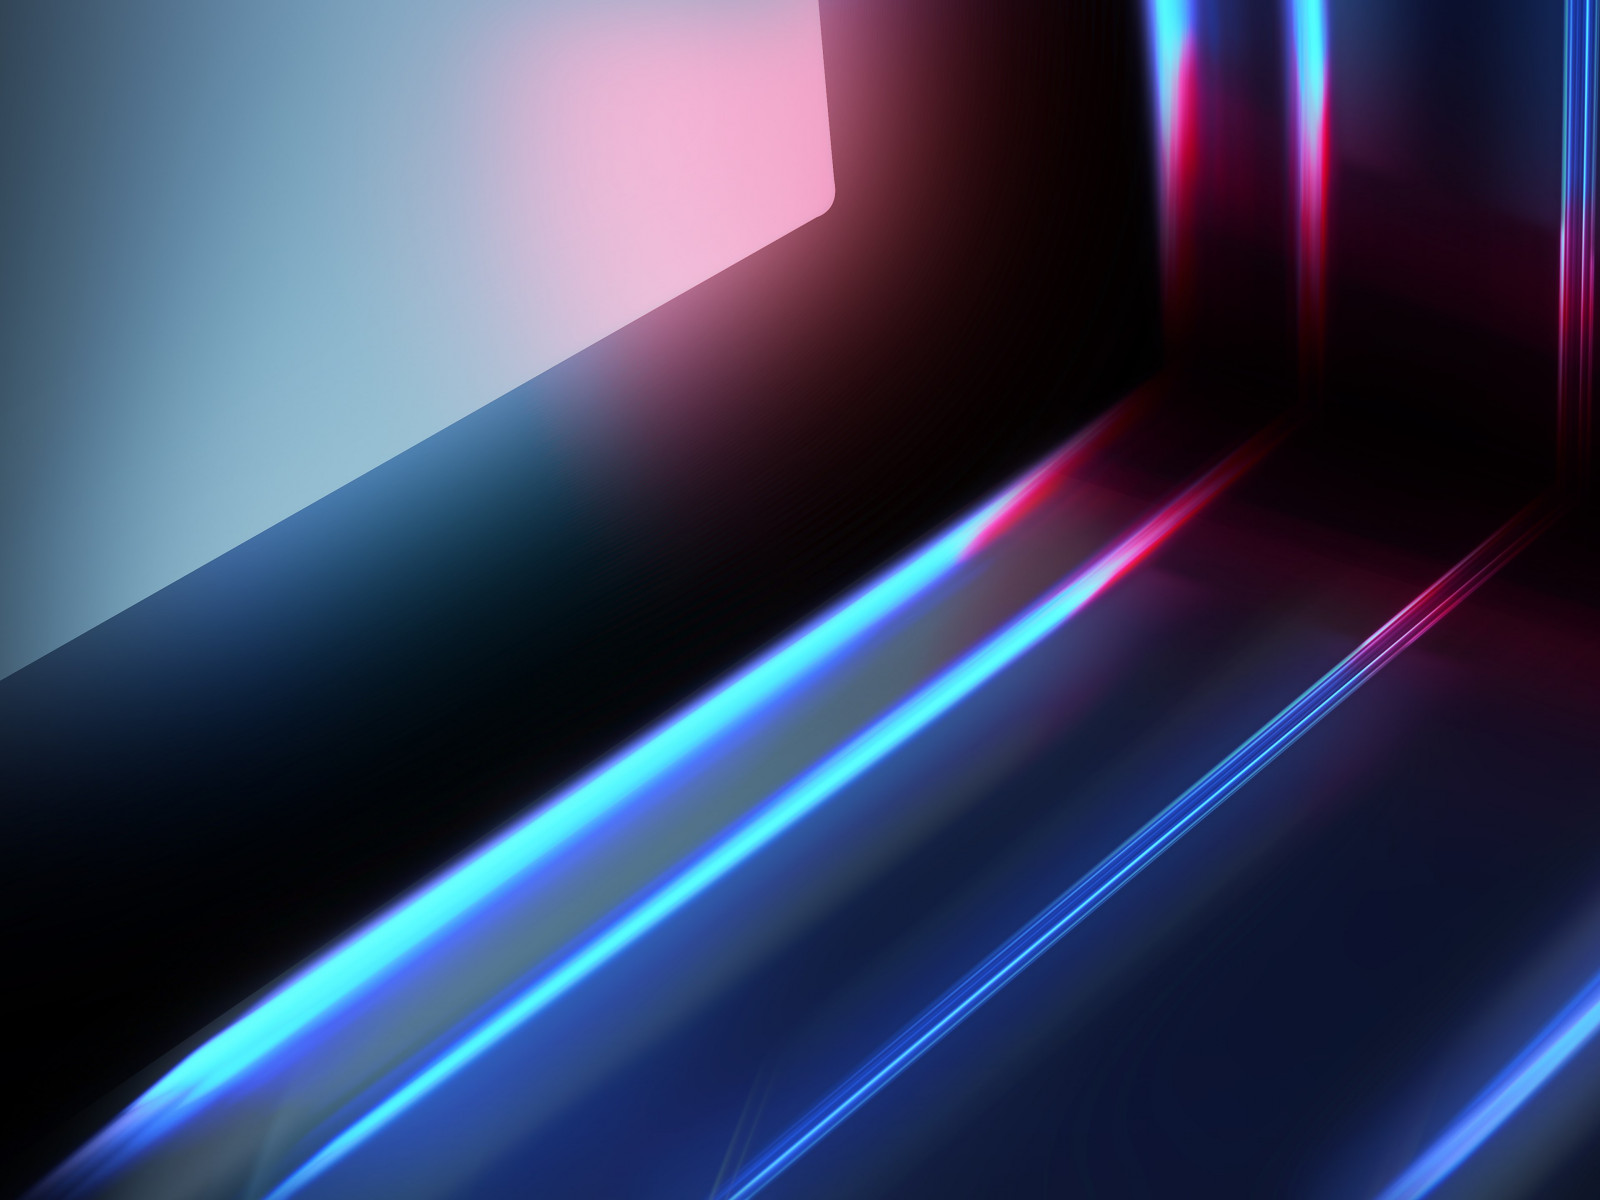 Abstract blue red lights wallpaper 1600x1200